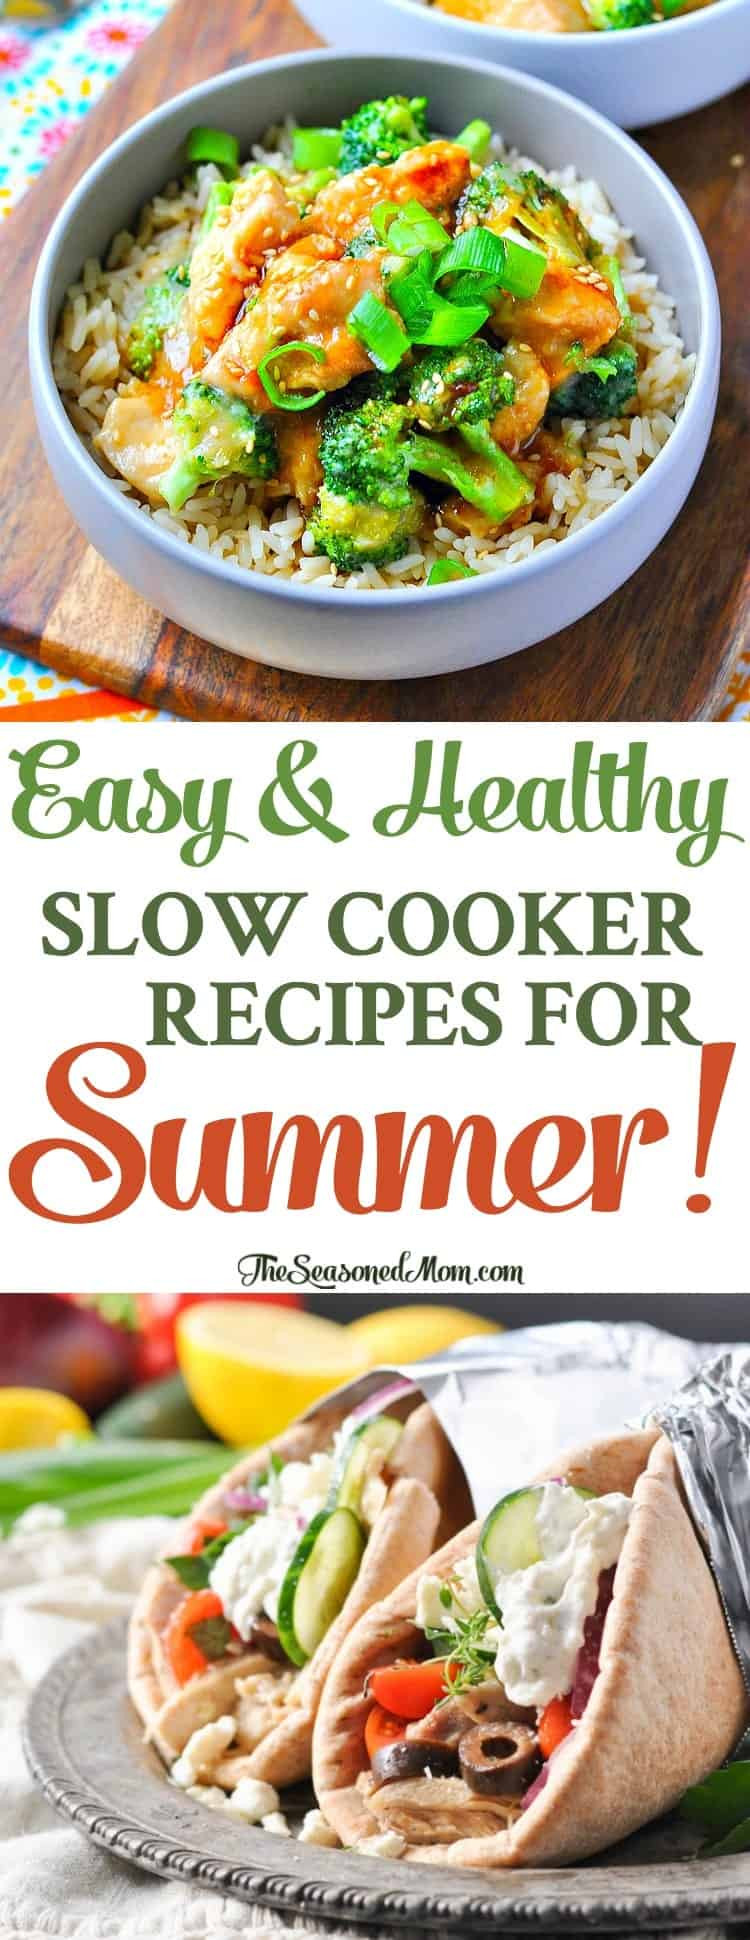 Easy Healthy Slow Cooker Recipes  Easy Healthy Slow Cooker Recipes for Summer The